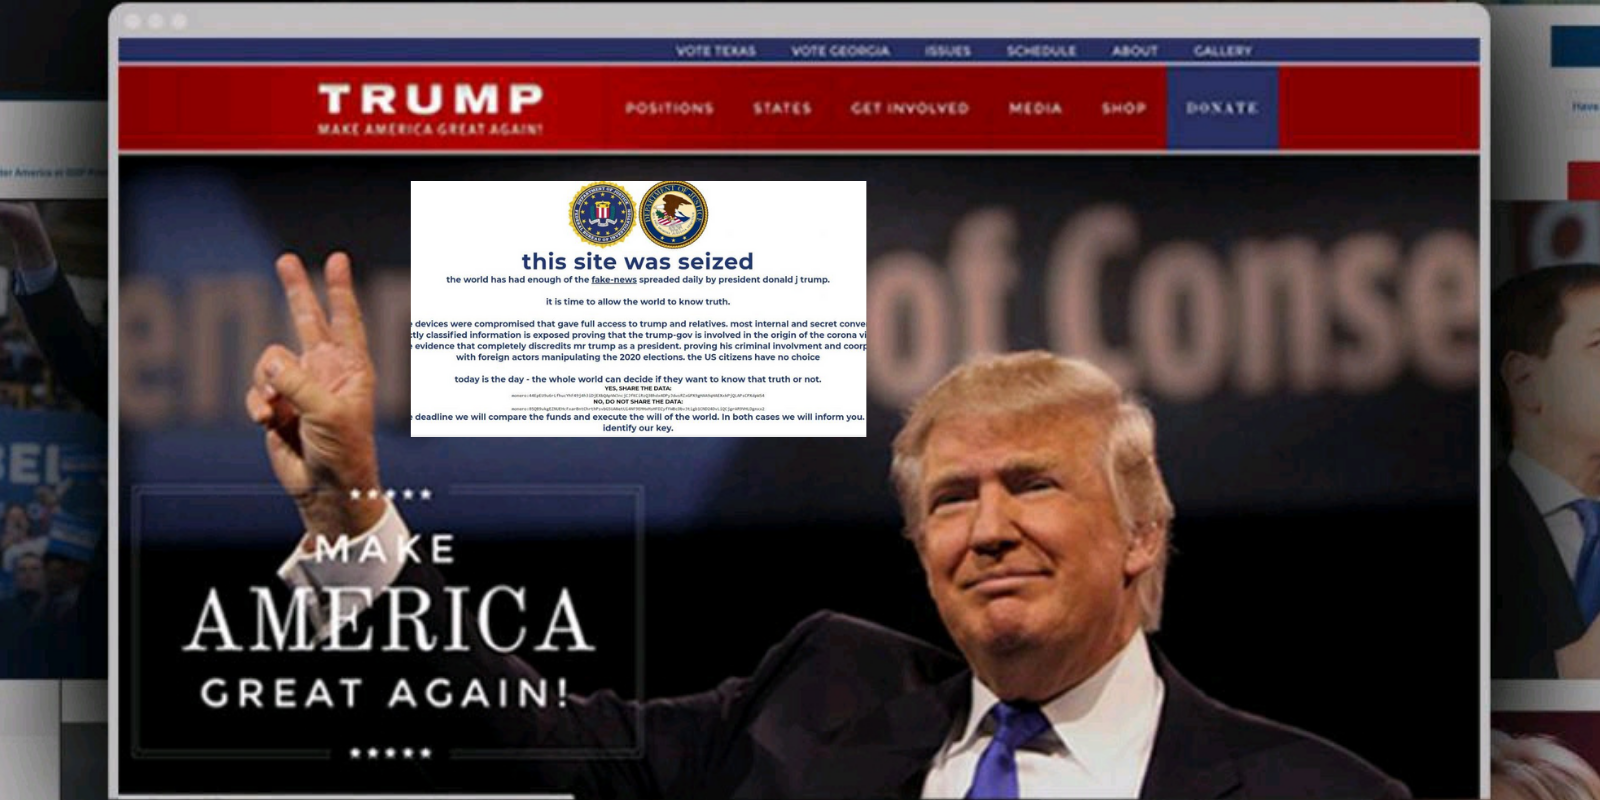 BREAKING: Hackers take down Donald Trump's official campaign website